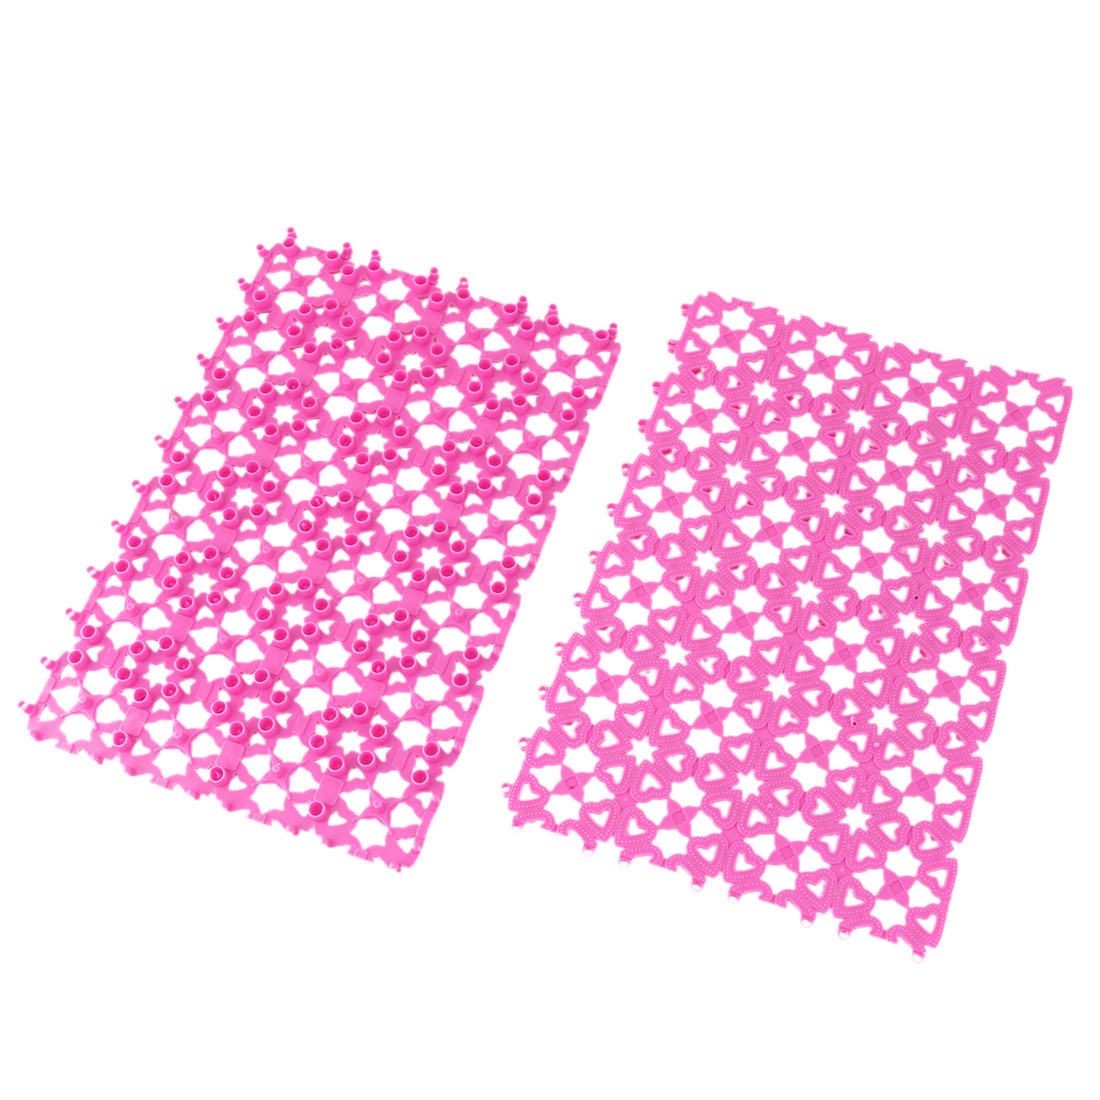 Bathroom Plastic Free Split Joint Water Resistant Anti-slip Shower Bath Mat Fuchsia 2pcs